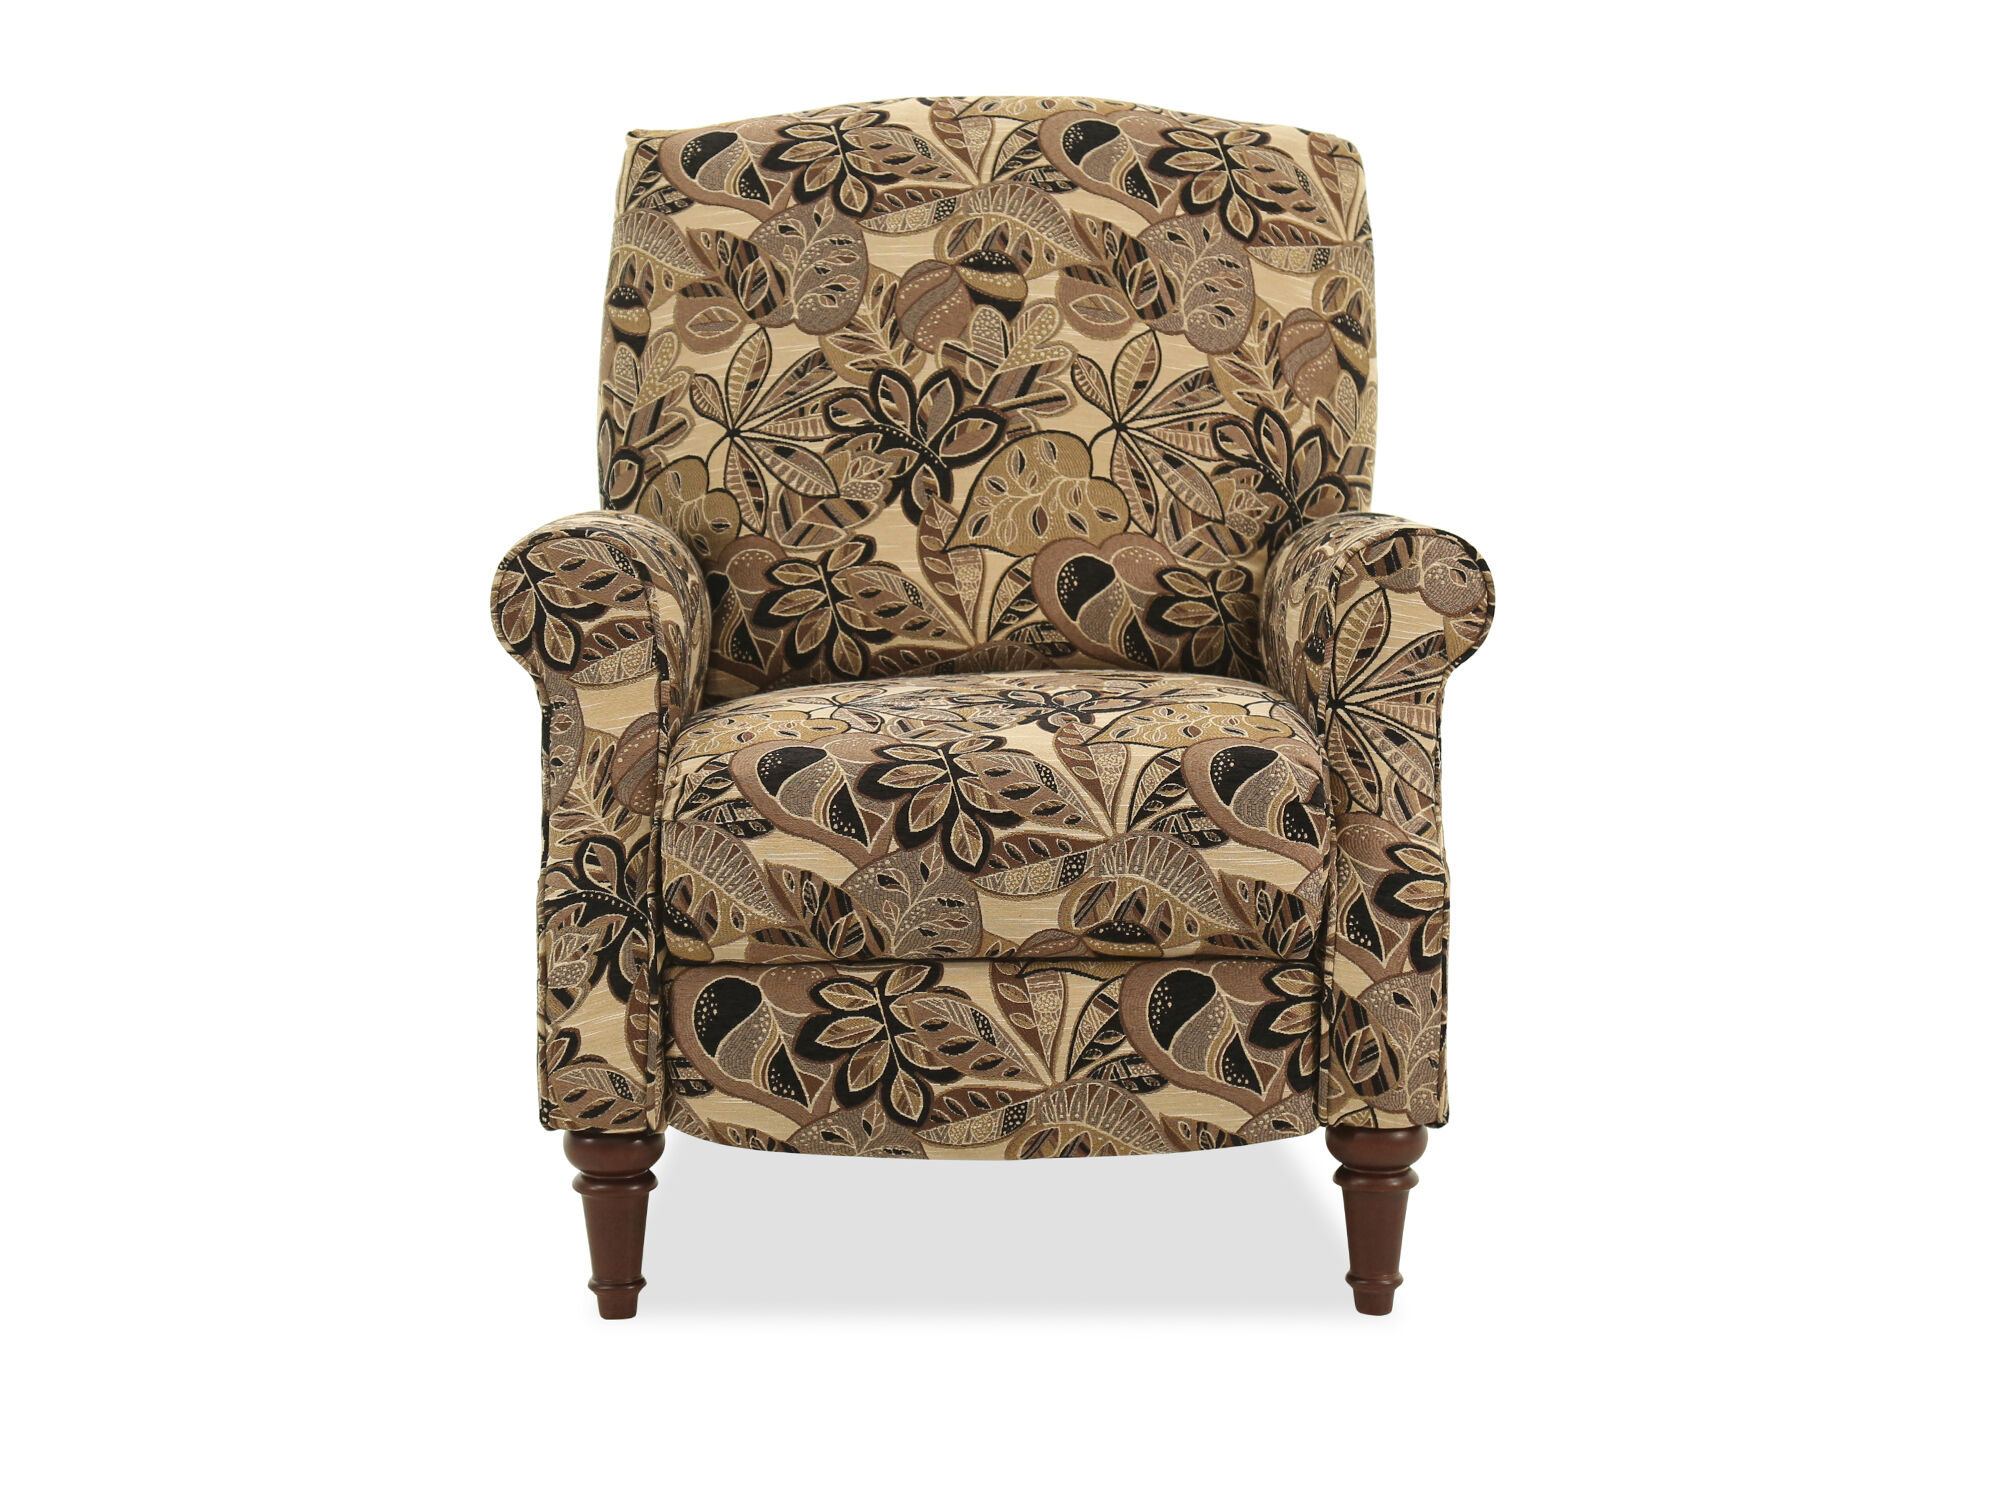 FloralPatterned 32 HighLeg Pressback Recliner in Brown